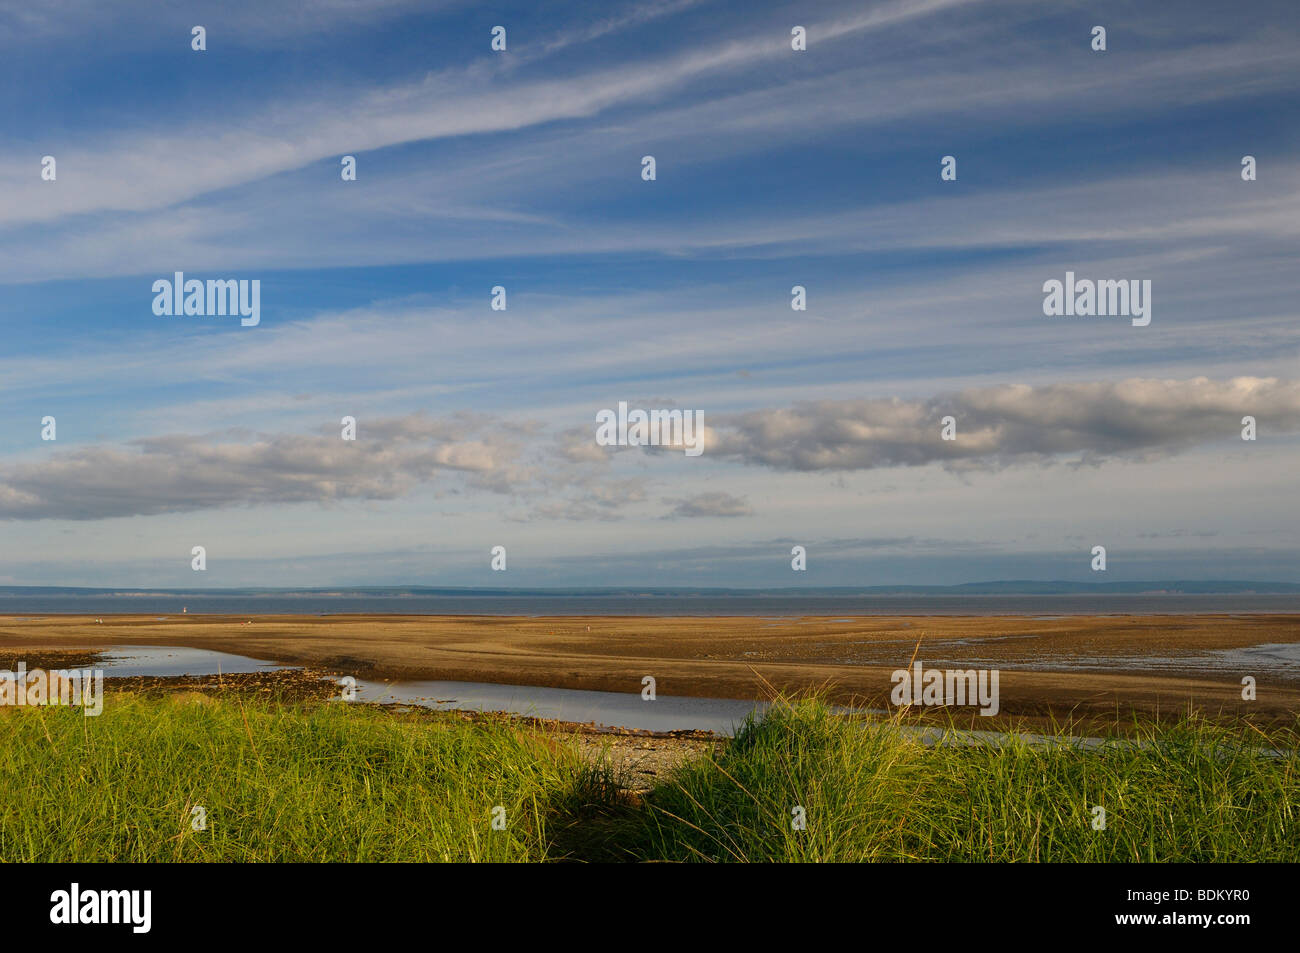 Bay of Fundy ocean floor at low tide from the shores of Alma New Brunswick Canada - Stock Image